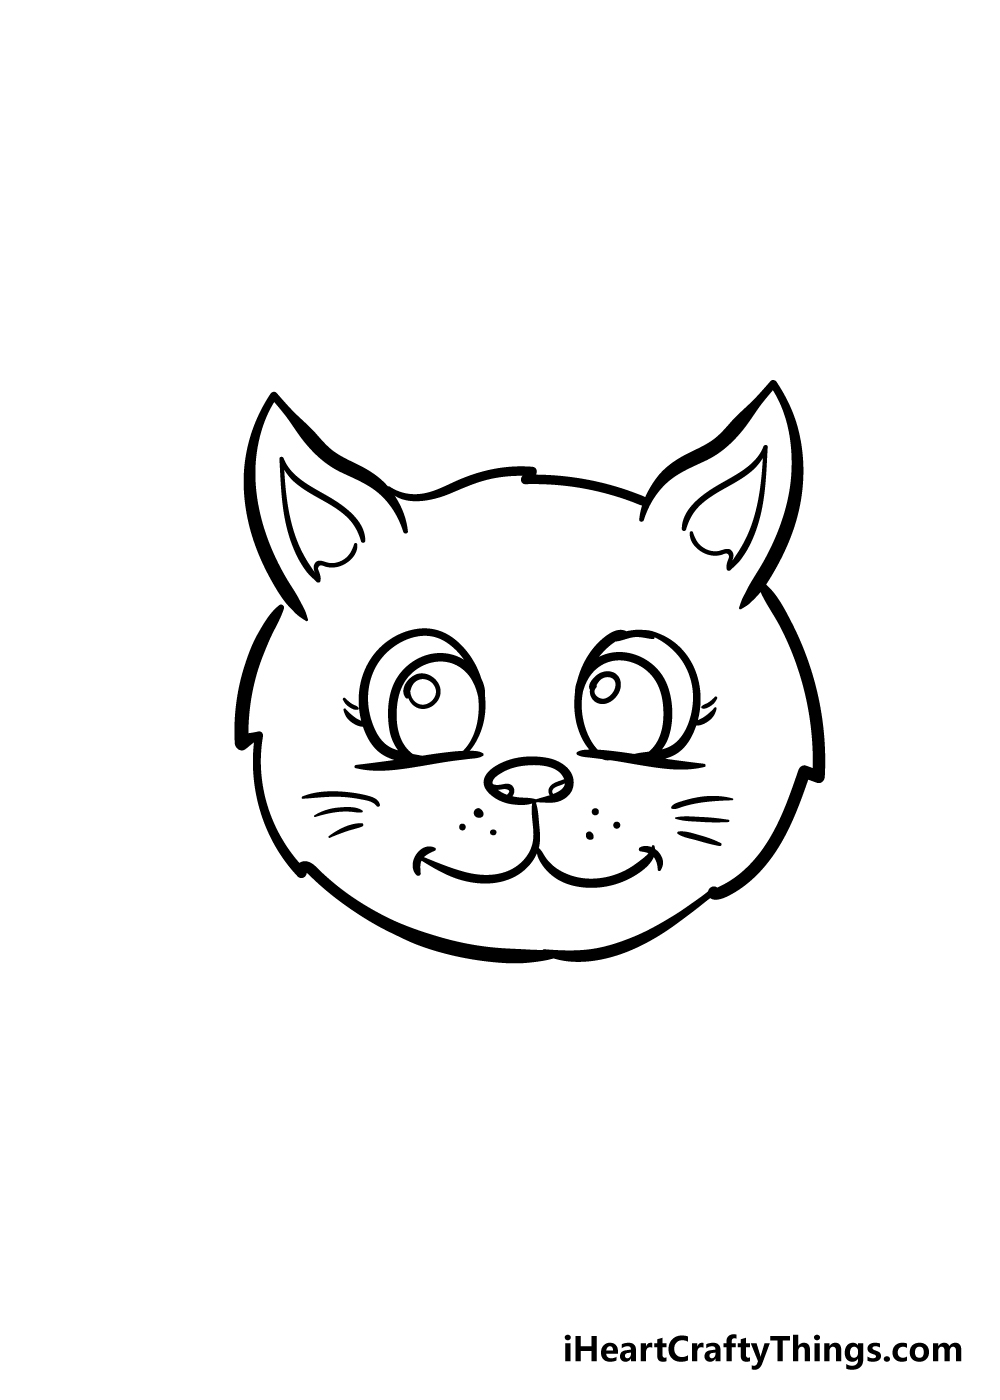 cat face drawing step 7